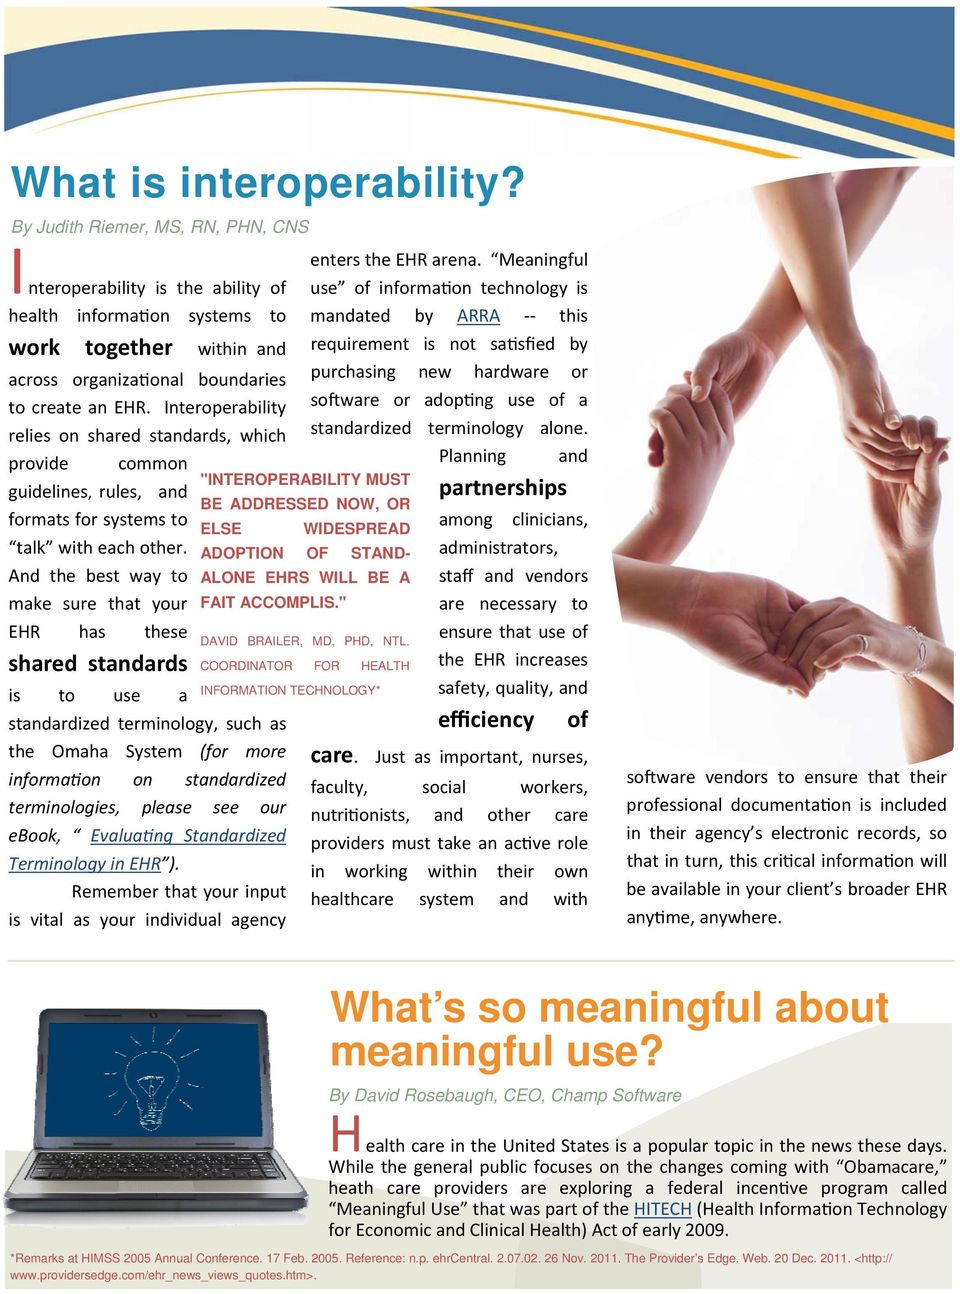 Interoperability relies on shared standards, which so ware or adop ng use of a standardized terminology alone.